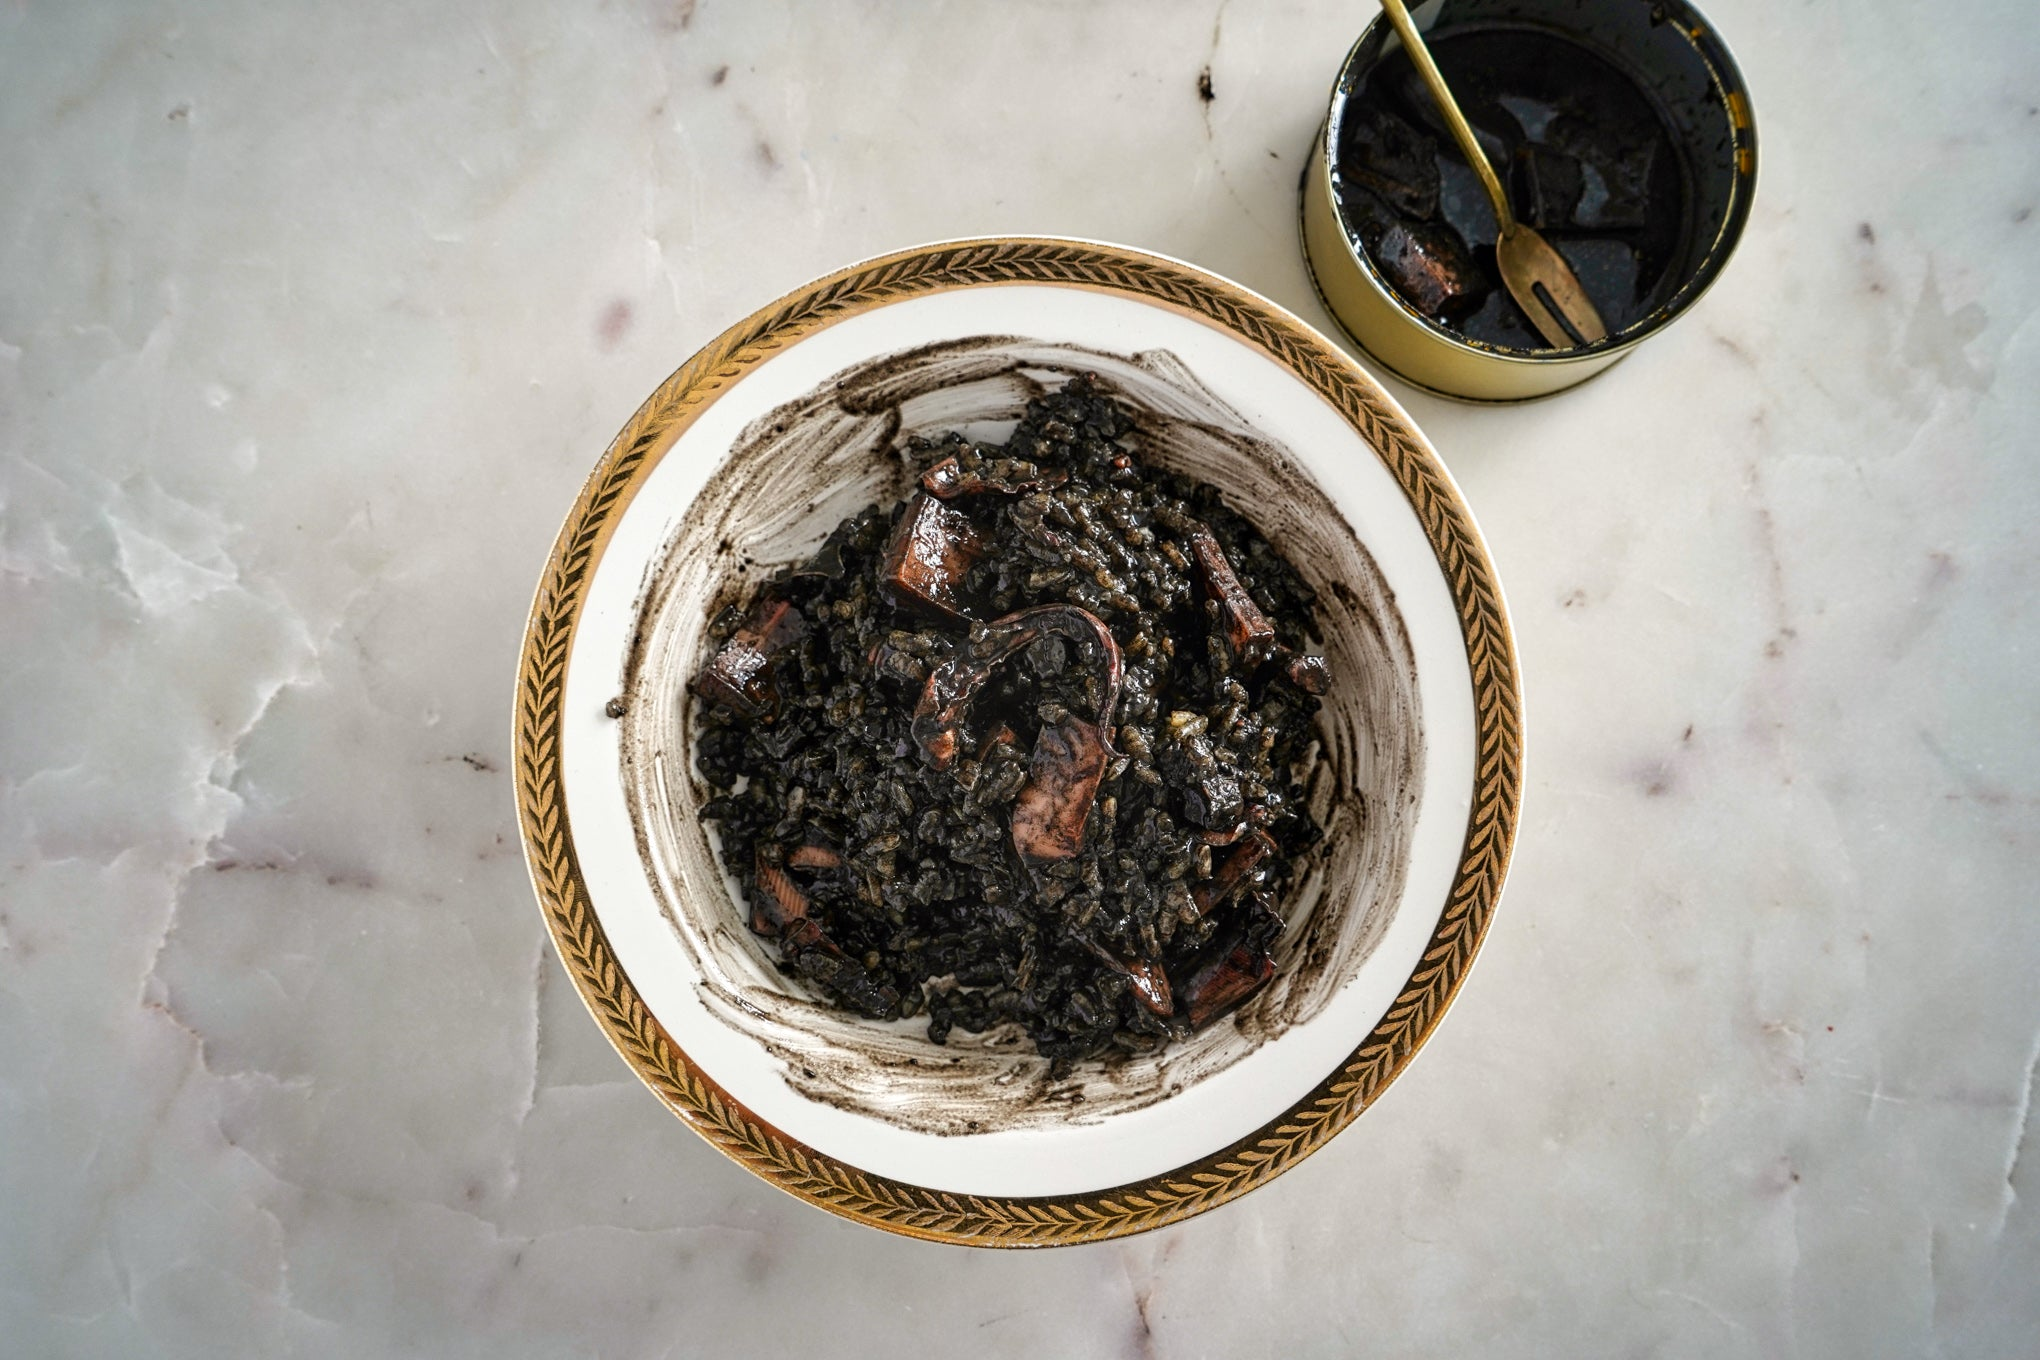 open can of calamar and completed recipe of arroz negra